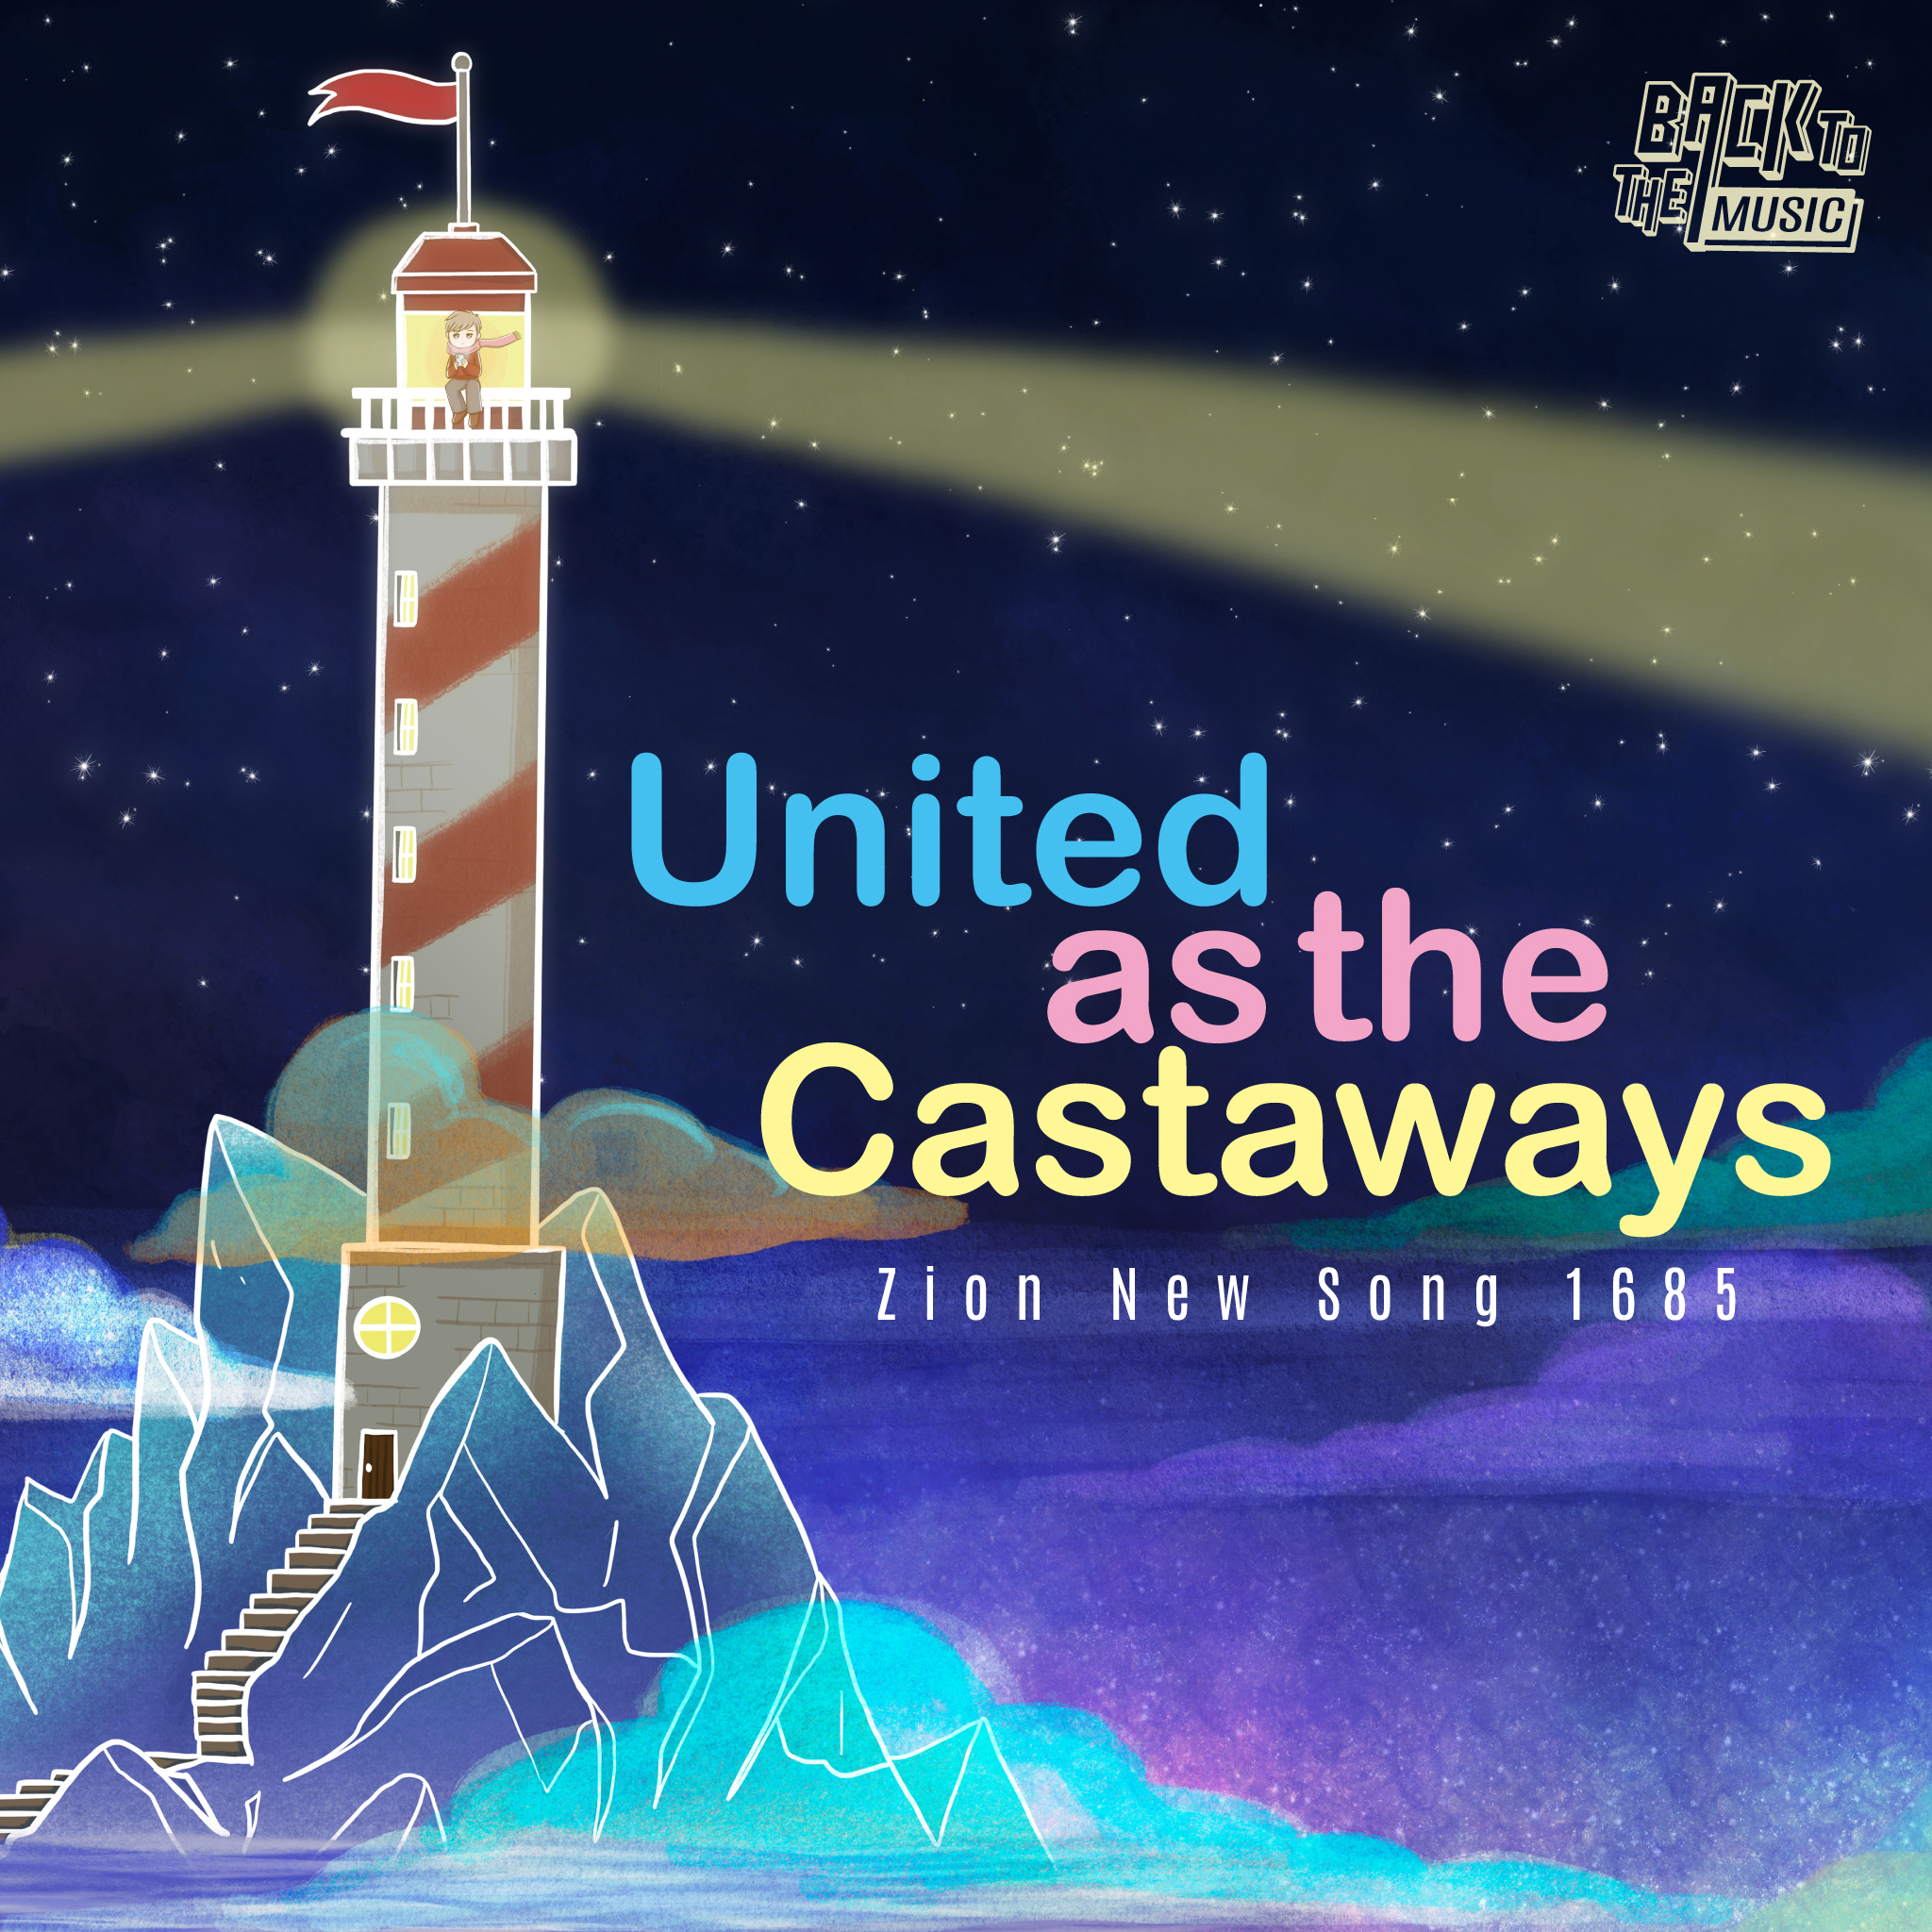 【United as the castaways】| Music | Praise the Lord 2021 | Back To The Music